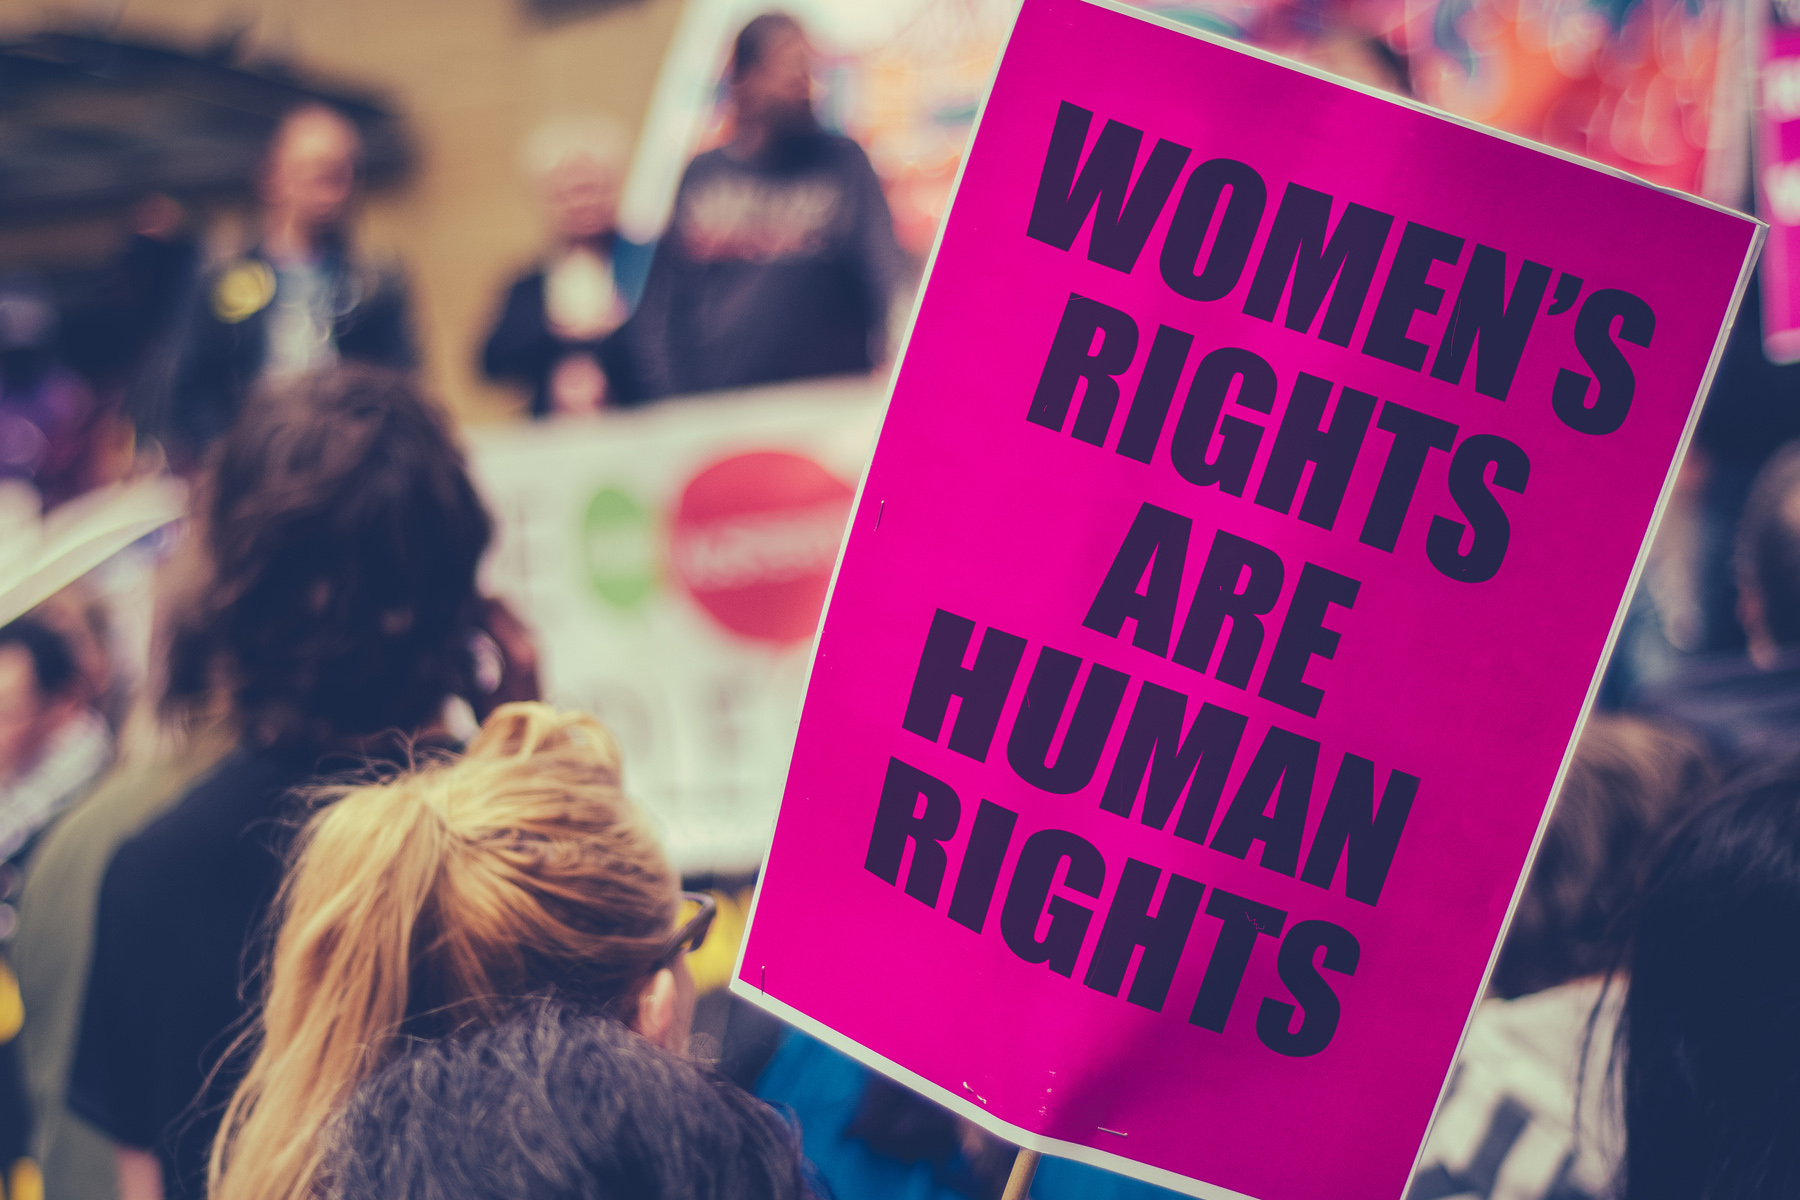 Women's rights protest sign